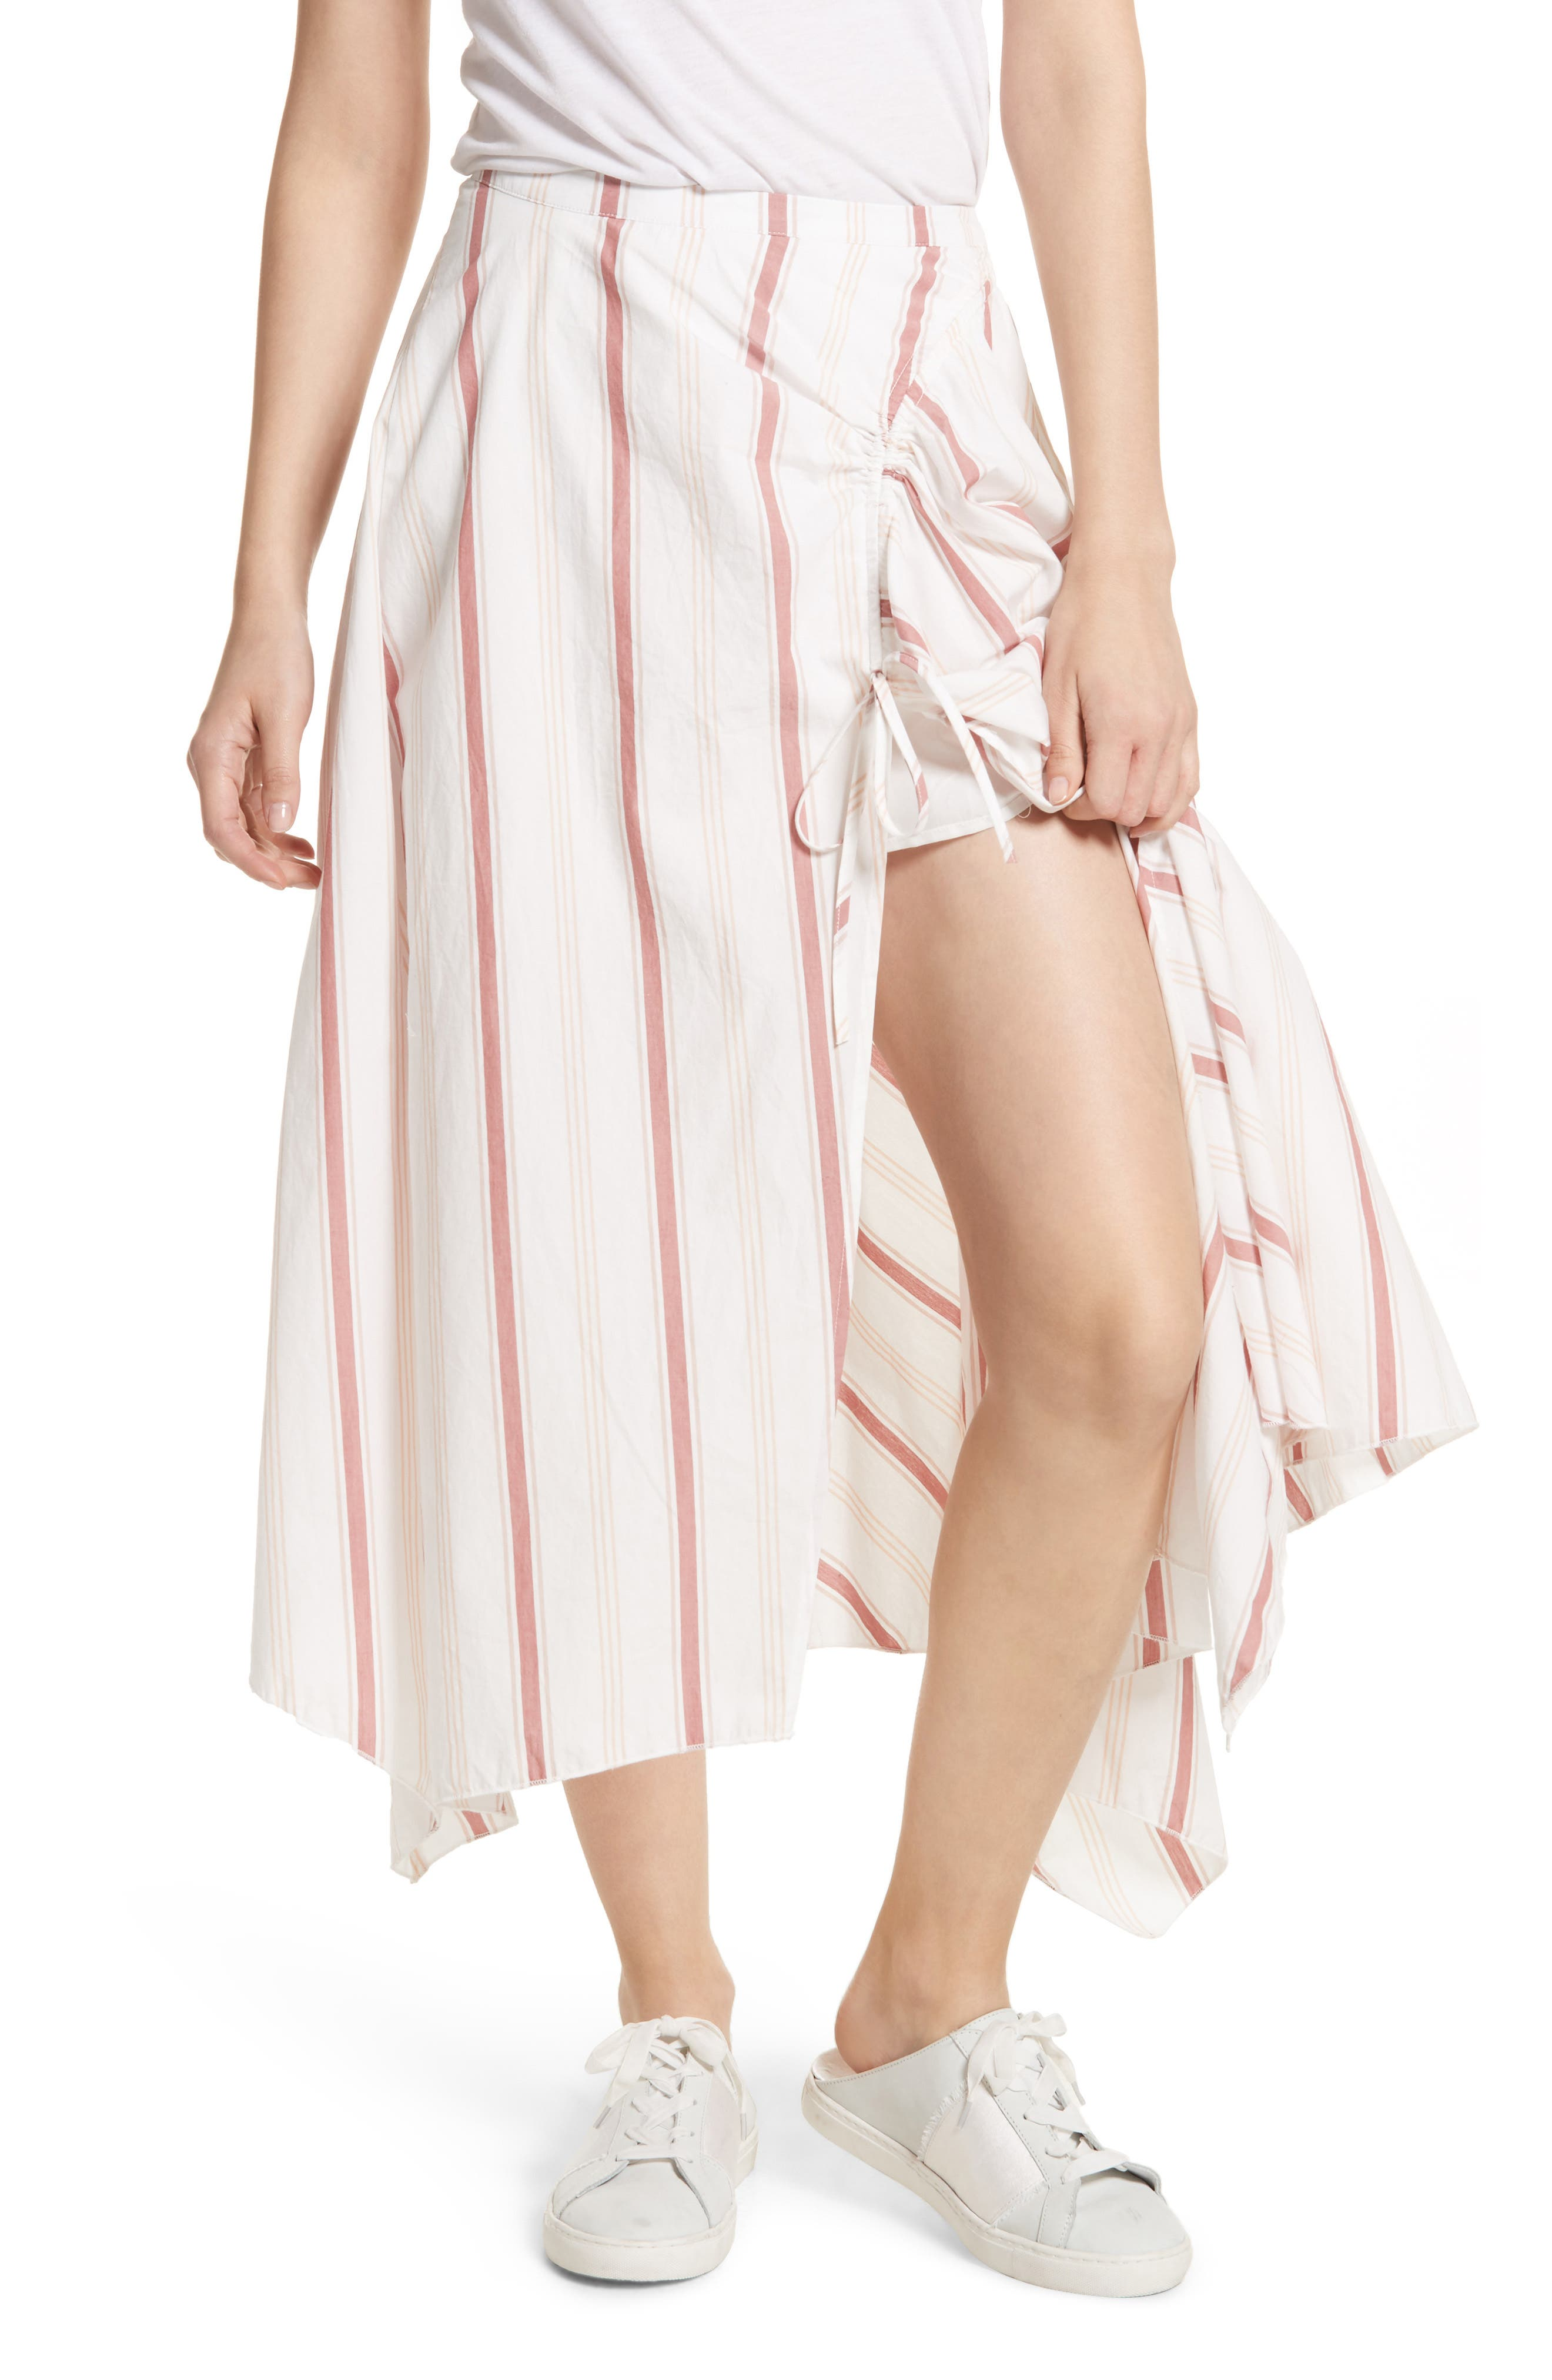 Hooked on Your Love Midi Skirt,                         Main,                         color, 903